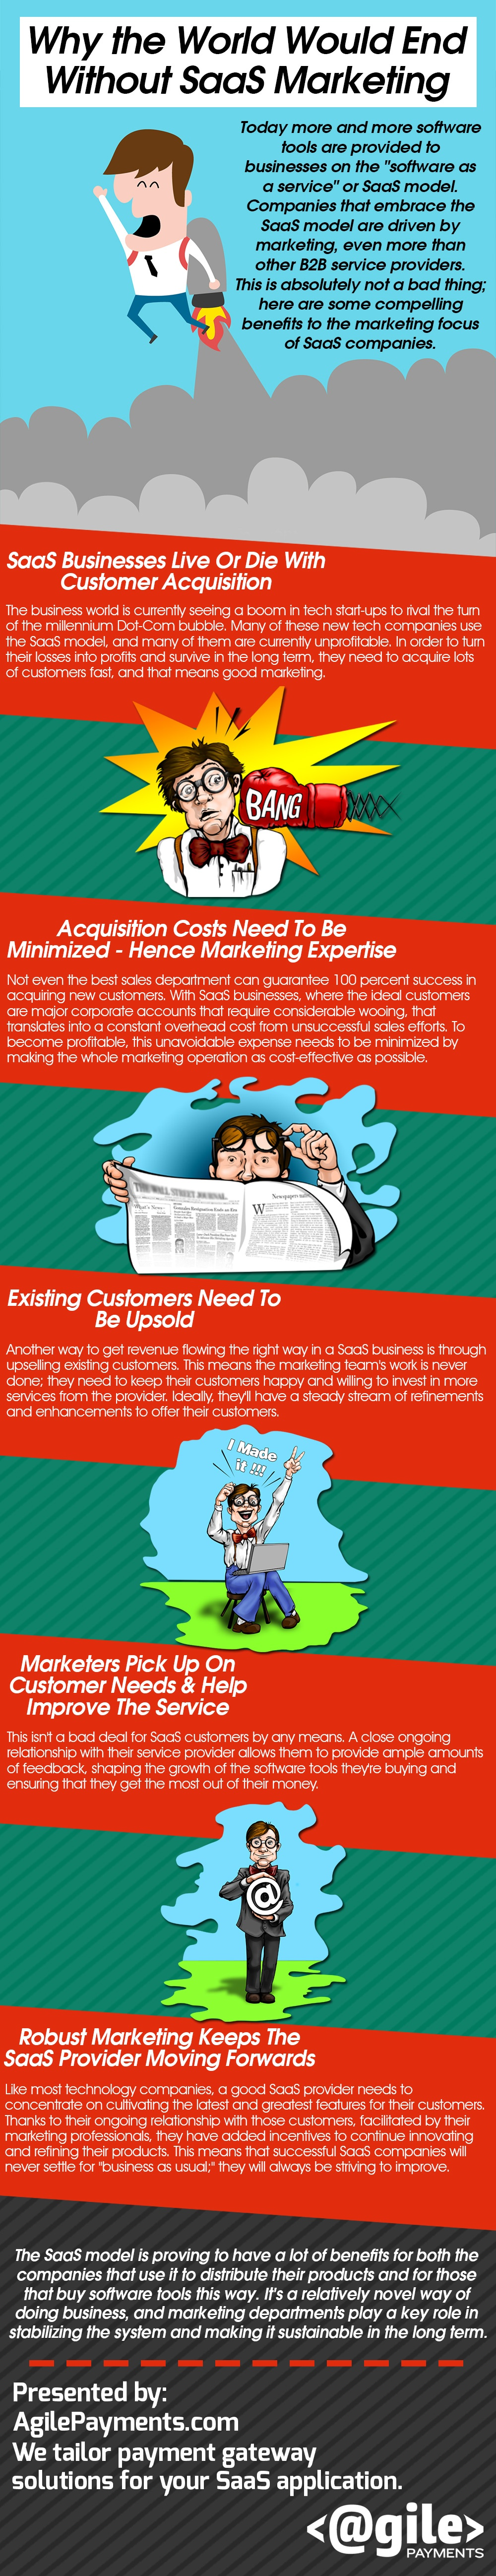 infographic-101-Why-the-World-Would-End-Without-SaaS-Marketing